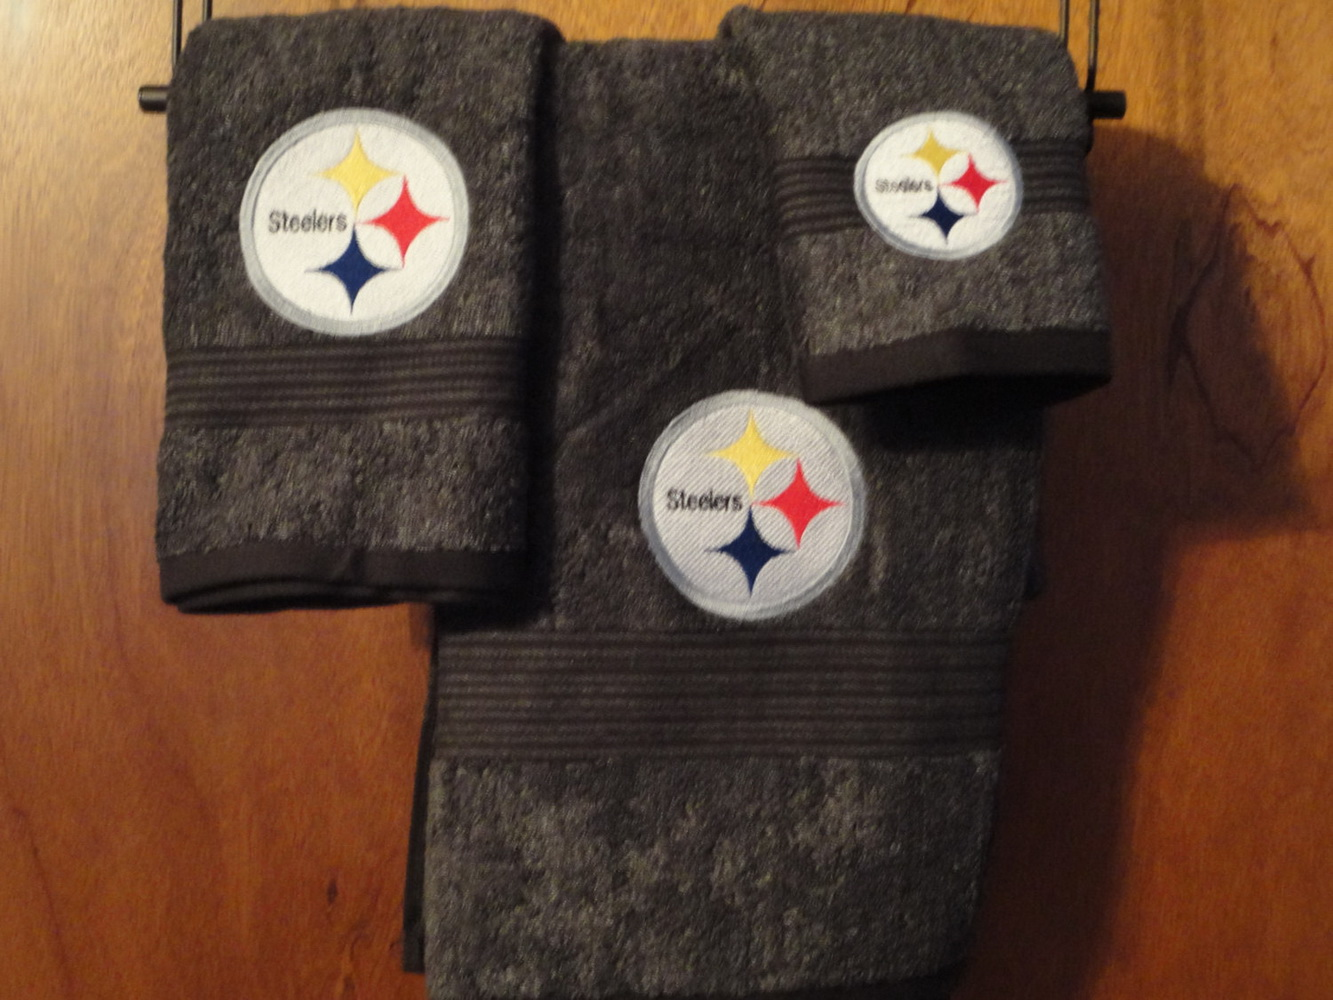 Pittsburgh Steelers logo design on embroidered bath towel